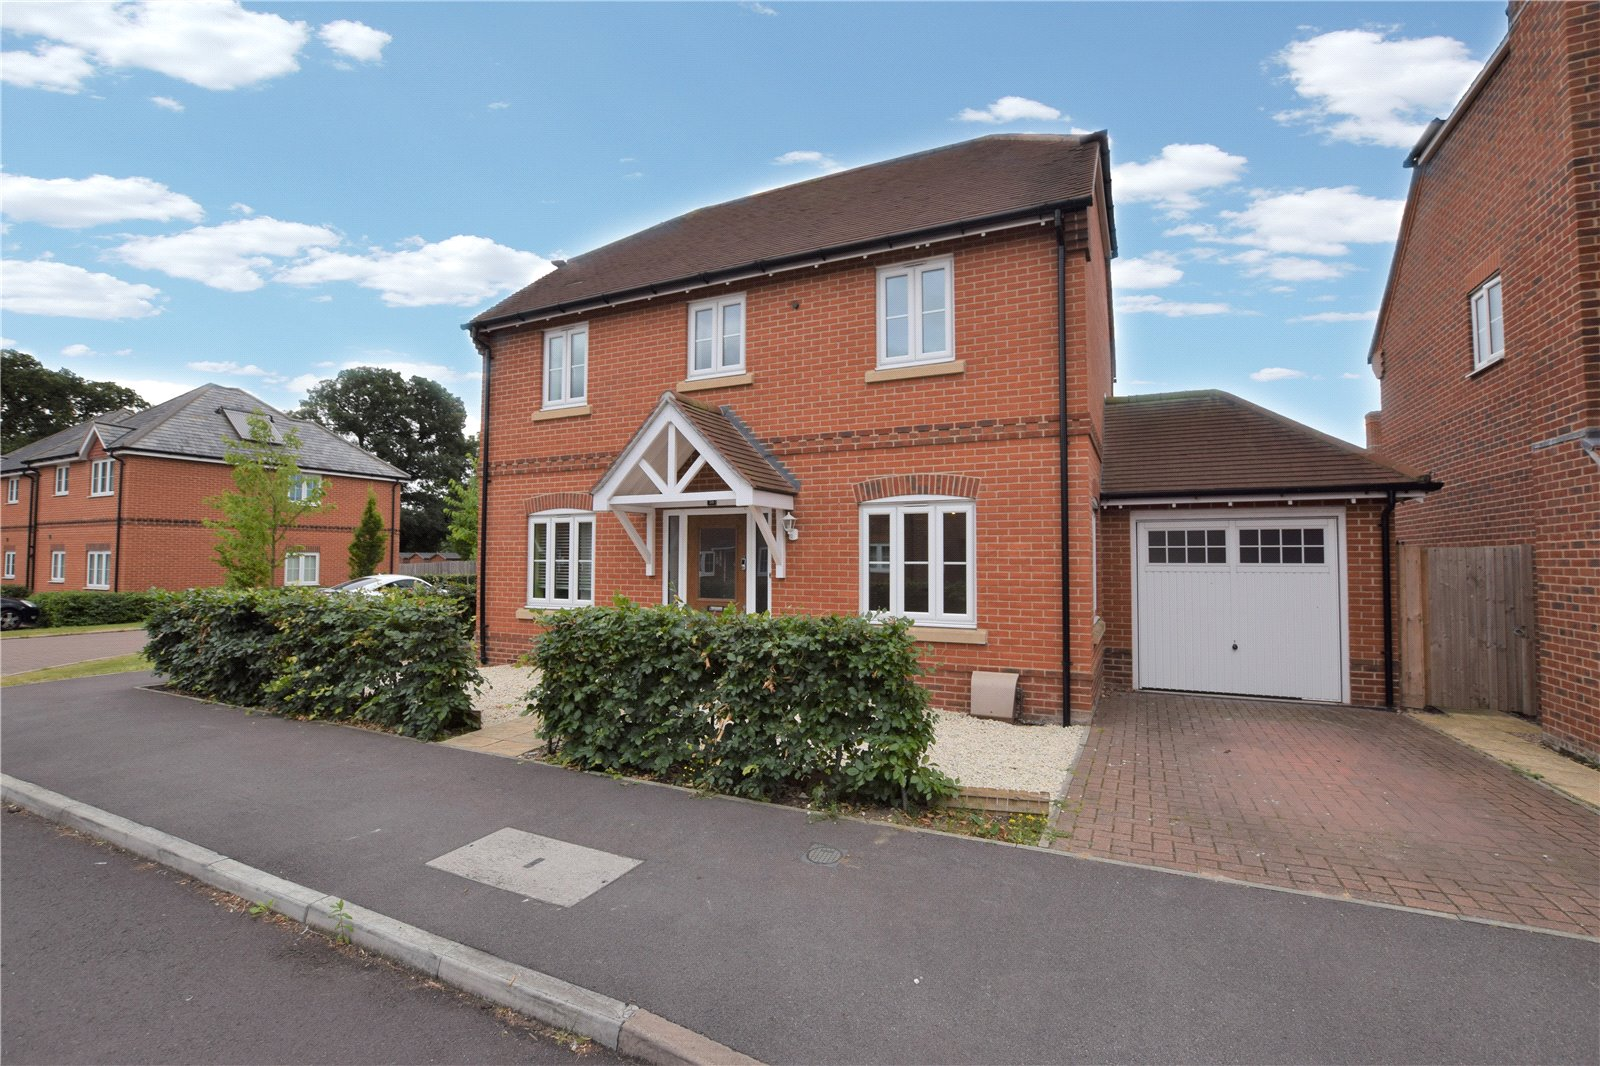 4 Bedrooms Detached House for sale in Blackberry Gardens, Winnersh, Wokingham, Berkshire, RG41